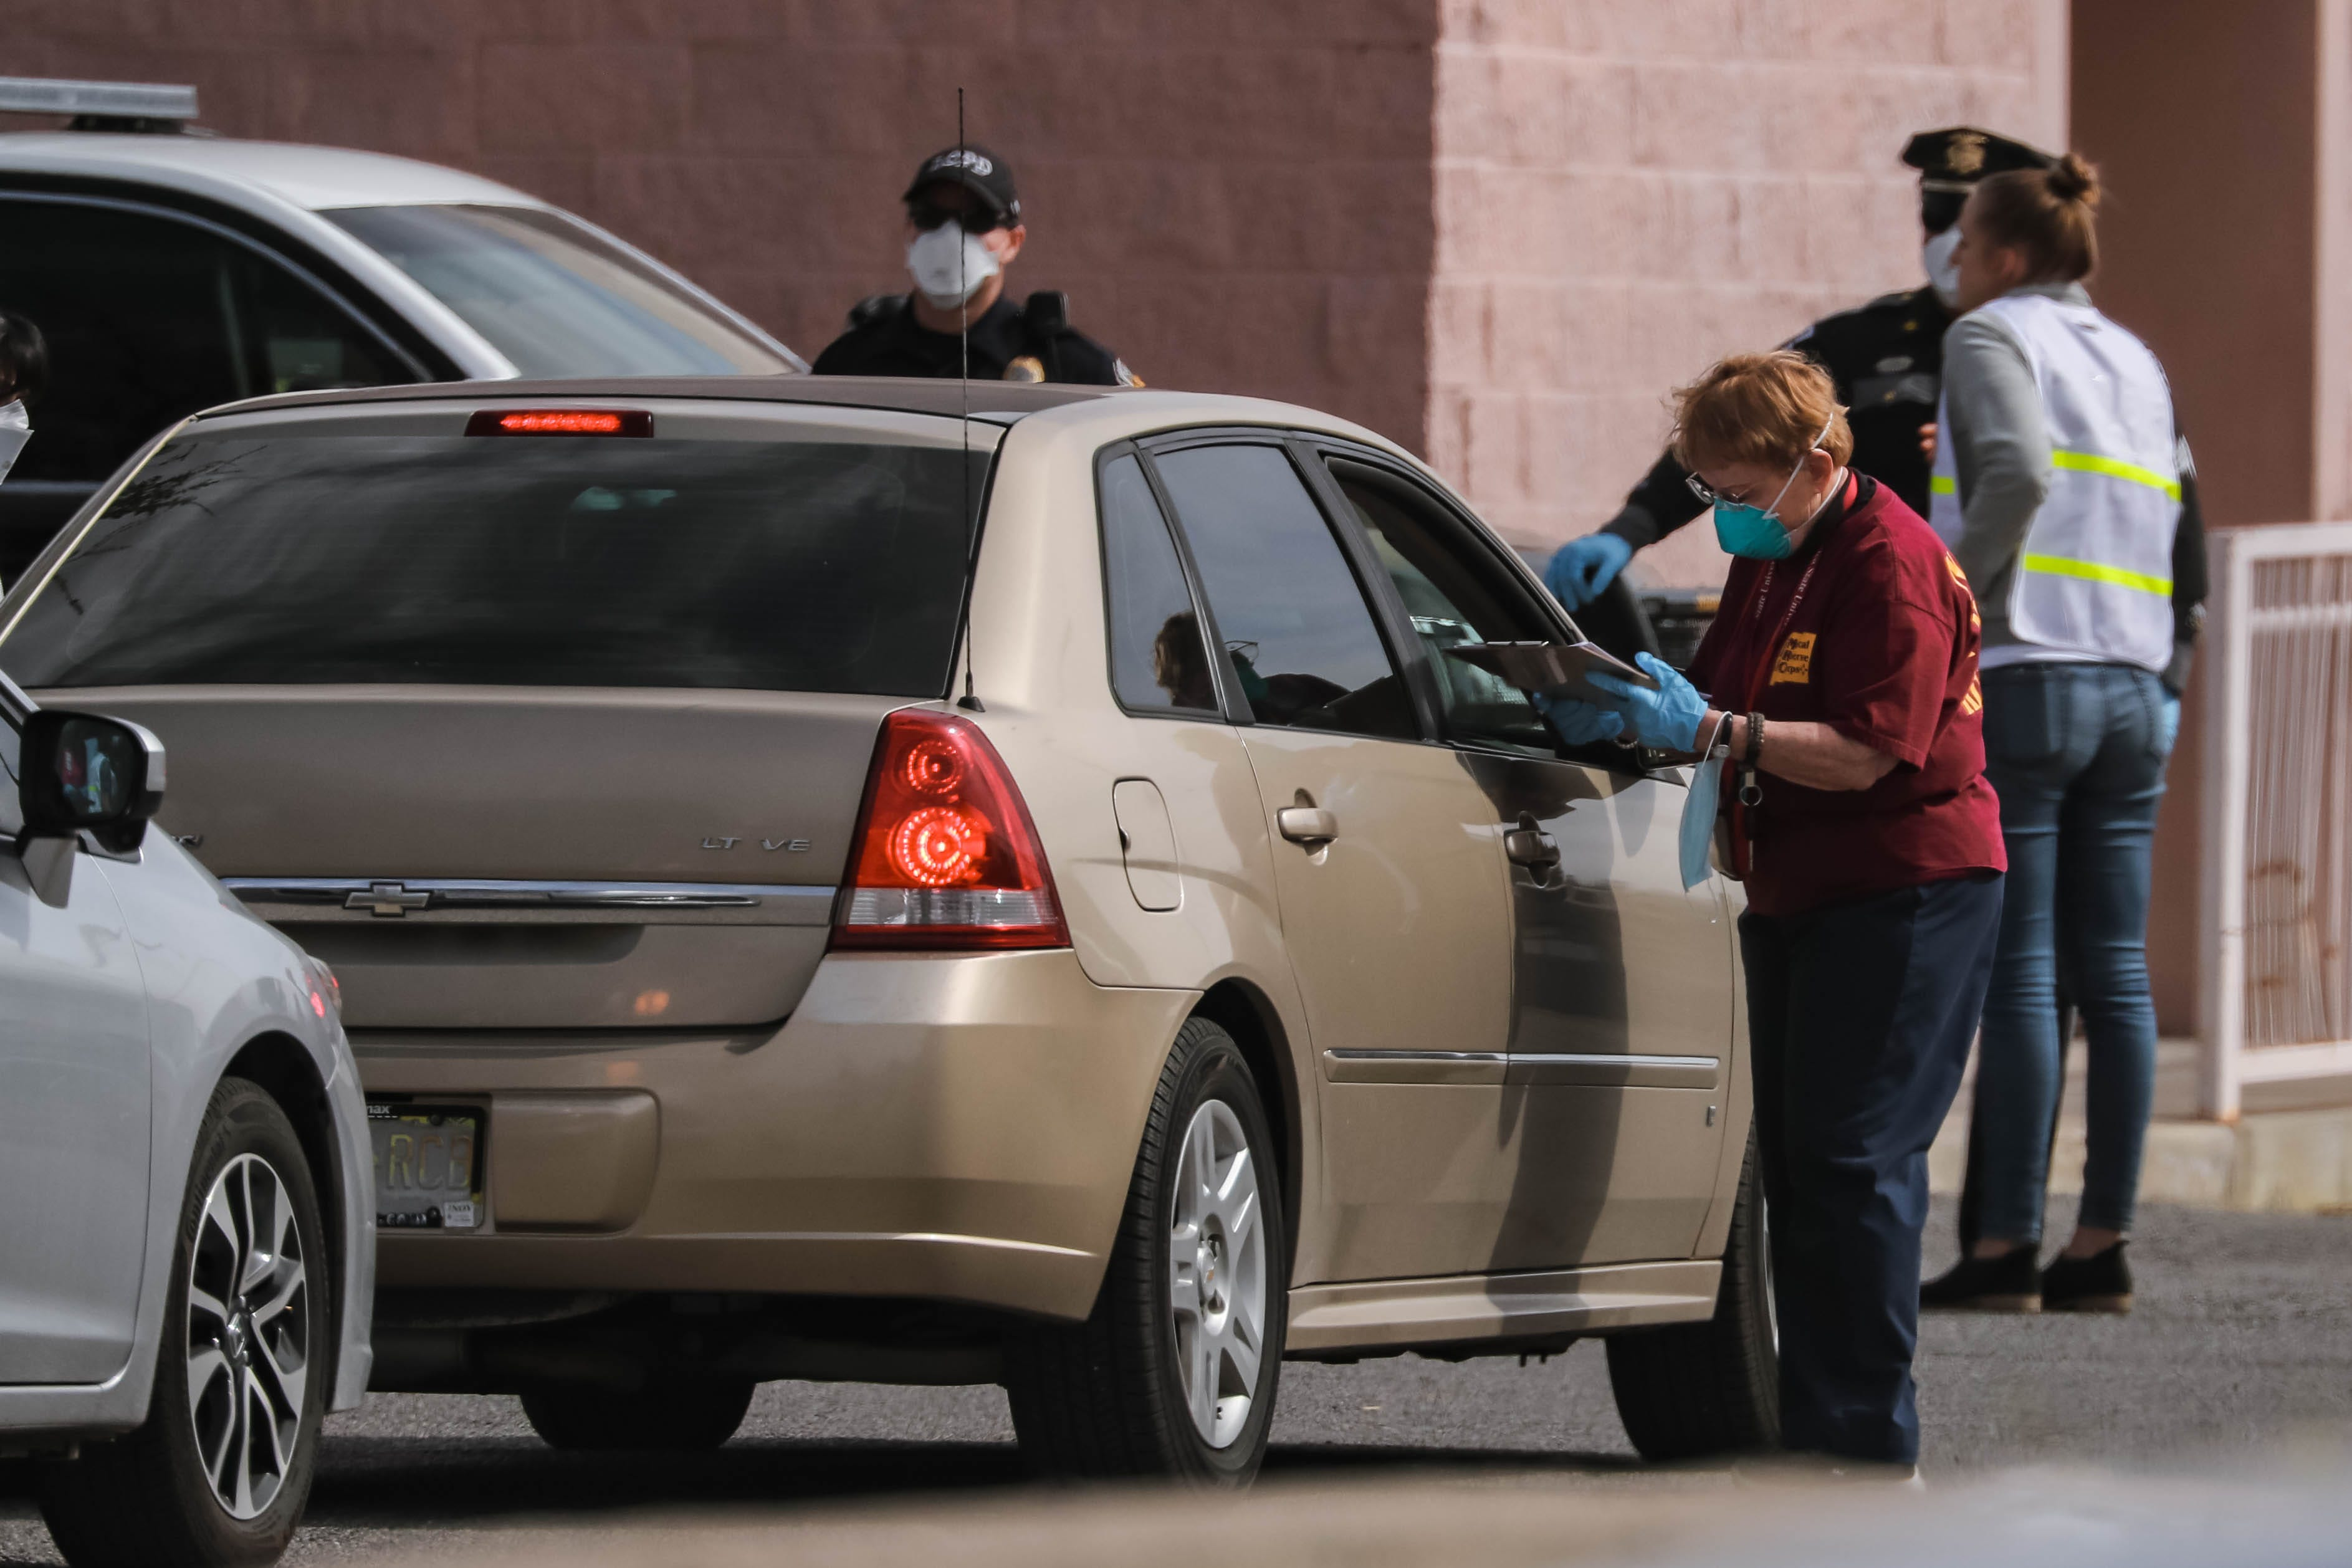 Drive-thru coronavirus testing was set up in Las Cruces at the Doña Ana County Health Services Center for the second of four days announced, on Saturday, March 21, 2020.